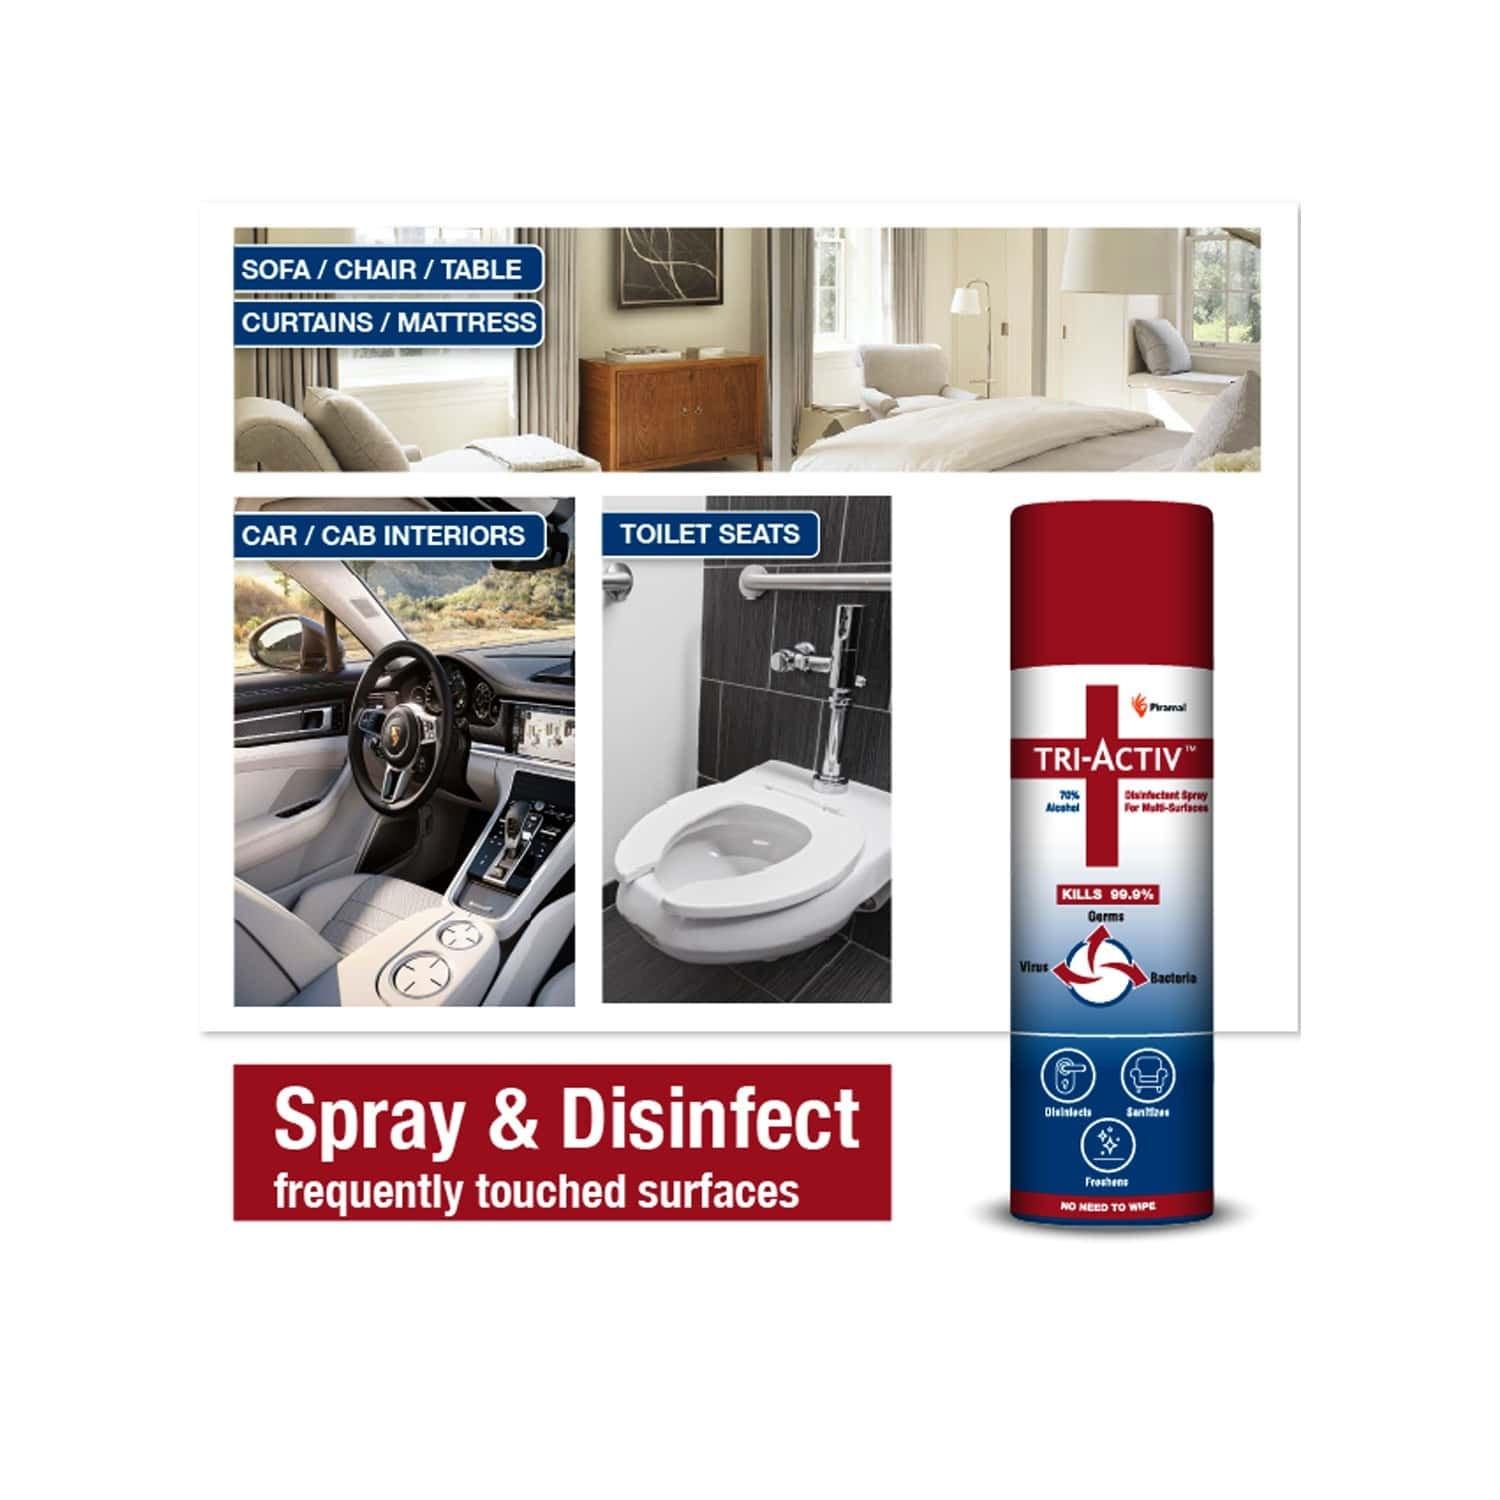 Tri-activ Disinfectant Spray For Multi-surfaces 70% Alcohol Based - 500ml